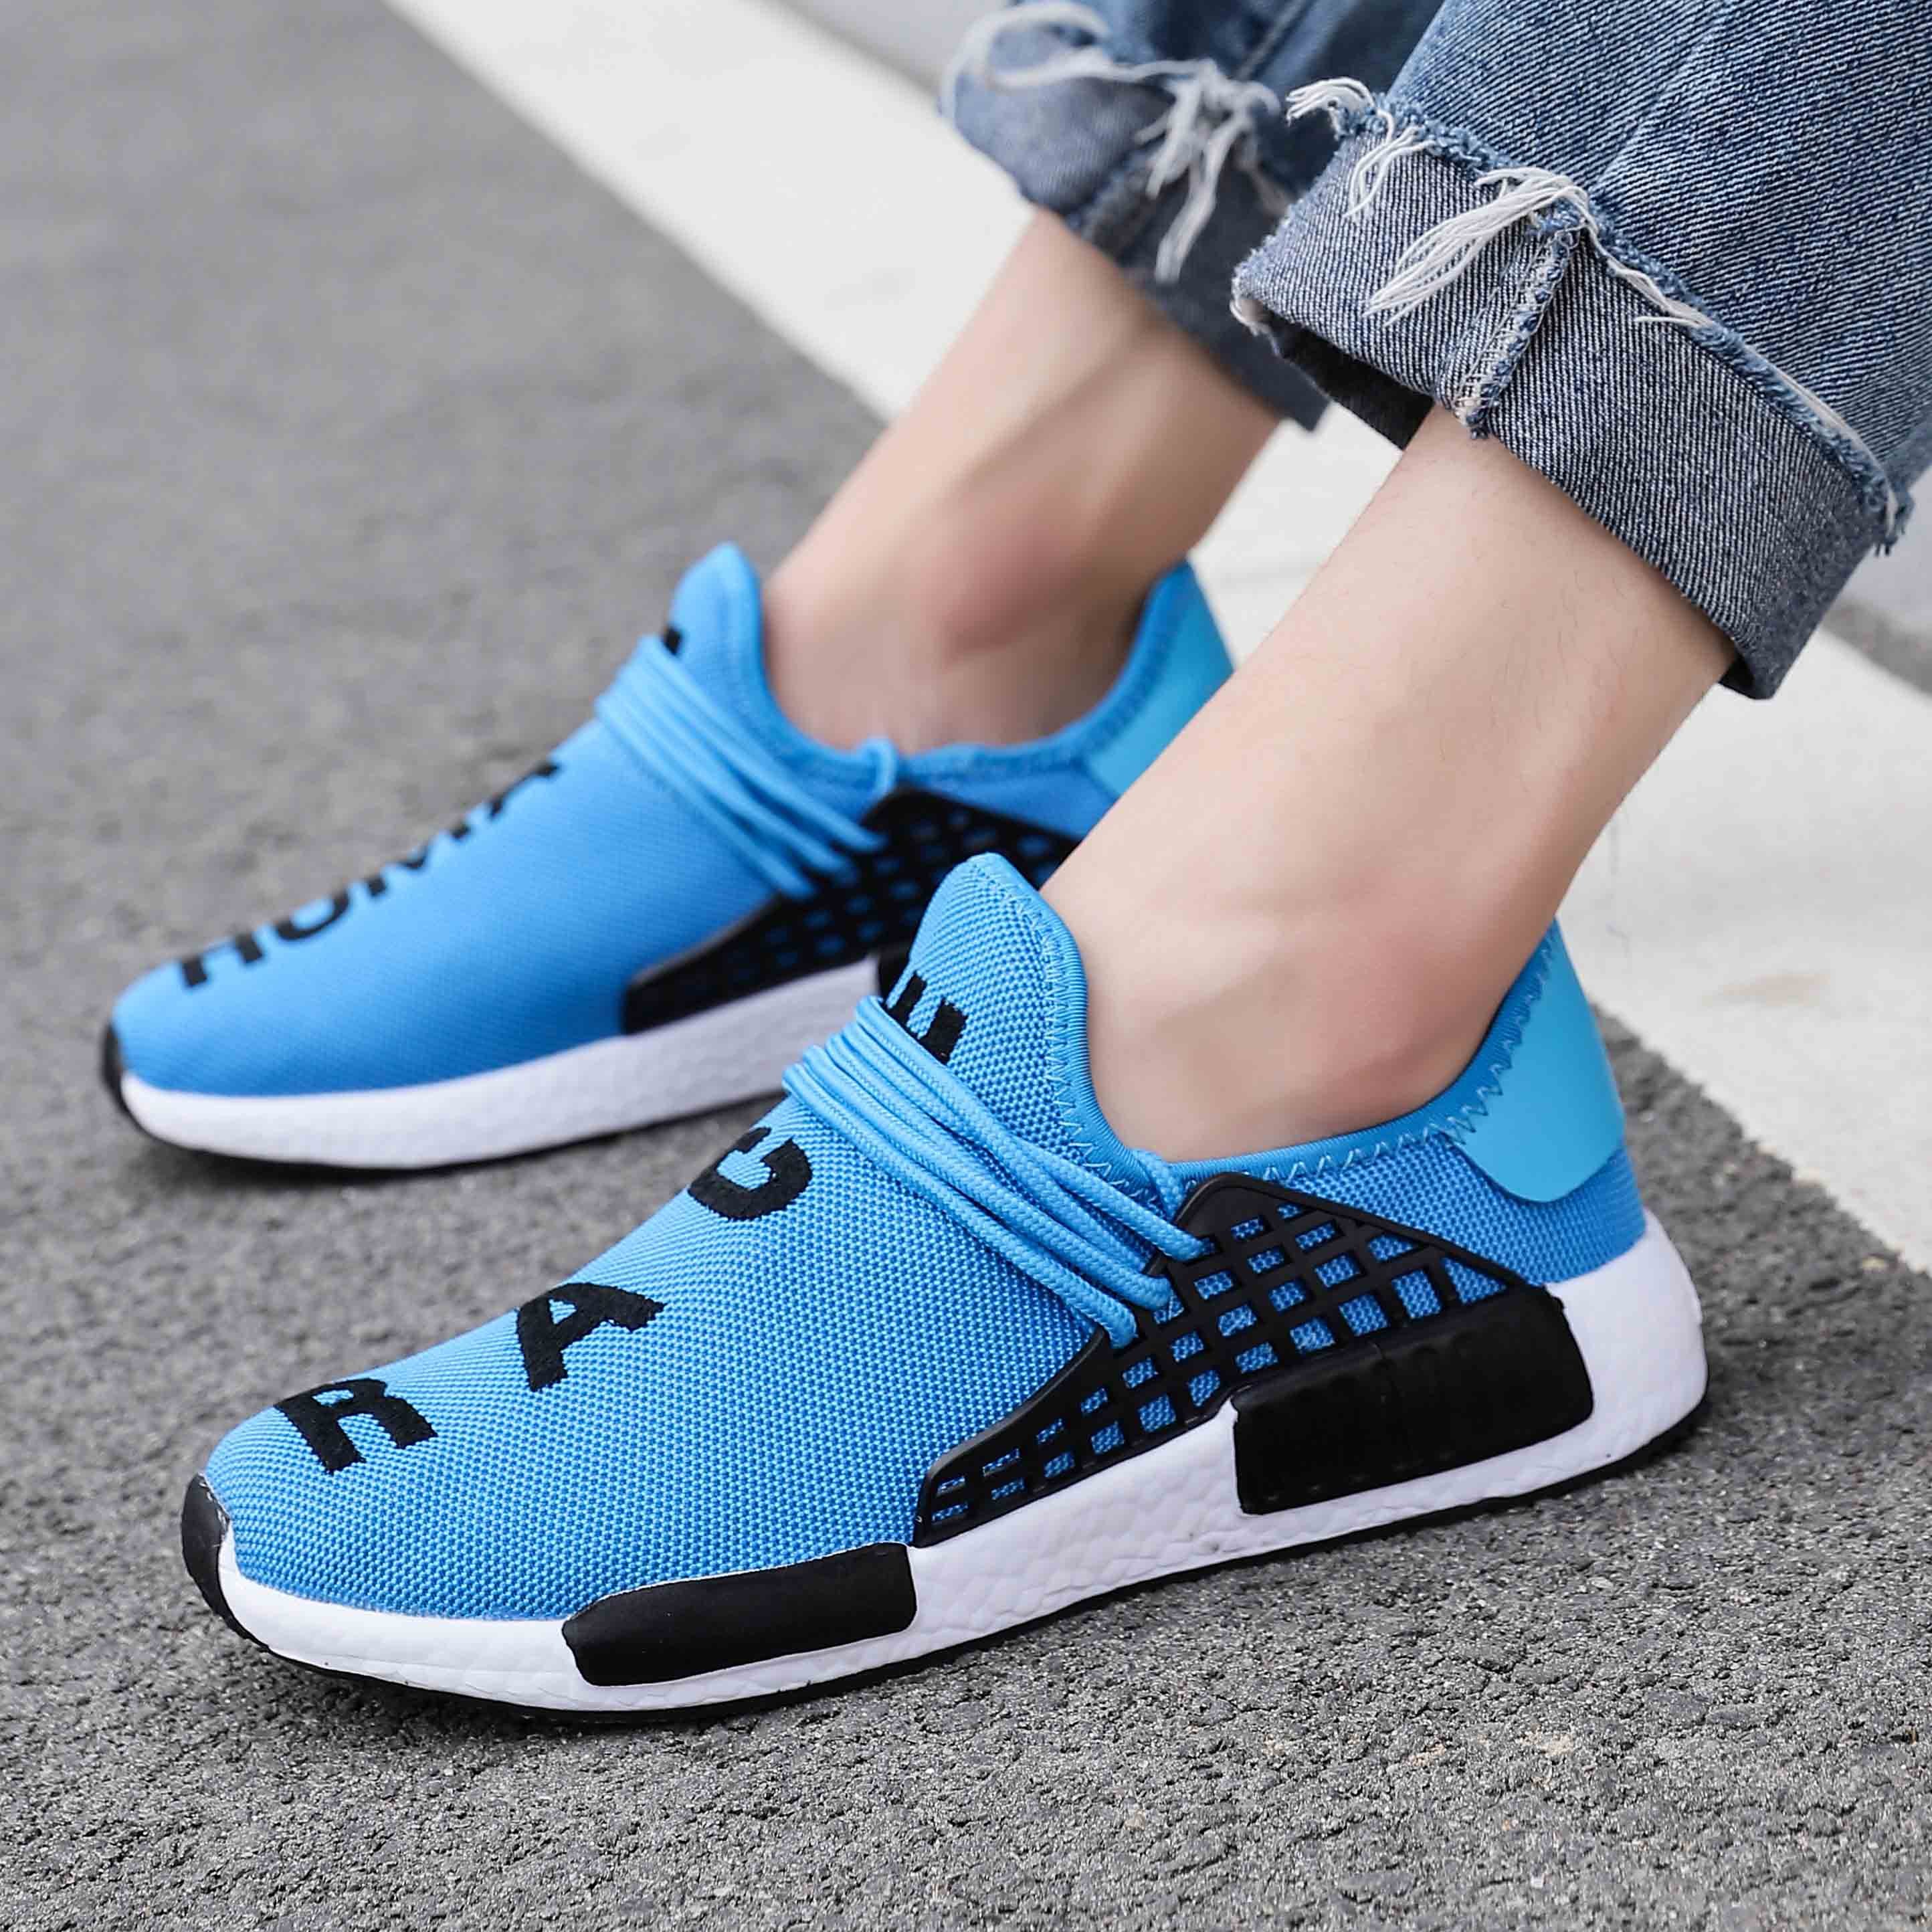 2019 Summer Men Fashion Sneakers Lace Up Casual Shoes For Man Breathable Male Walking Sneaker Shoes Big Size 13